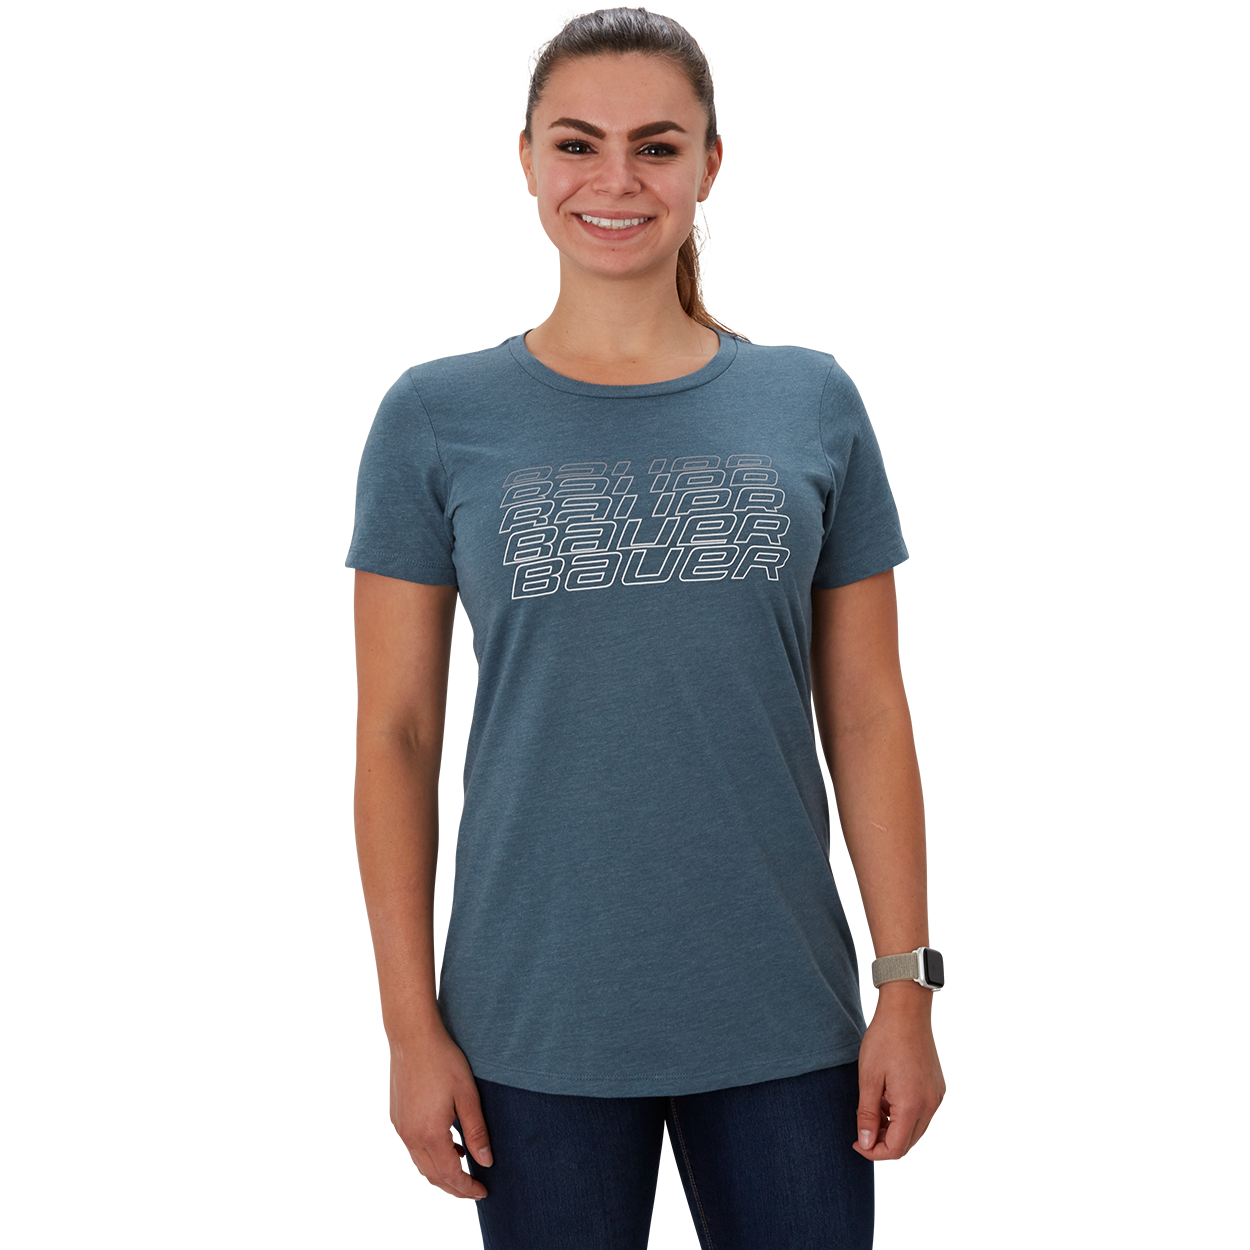 Fade Short Sleeve Women's T-Shirt,,Размер M